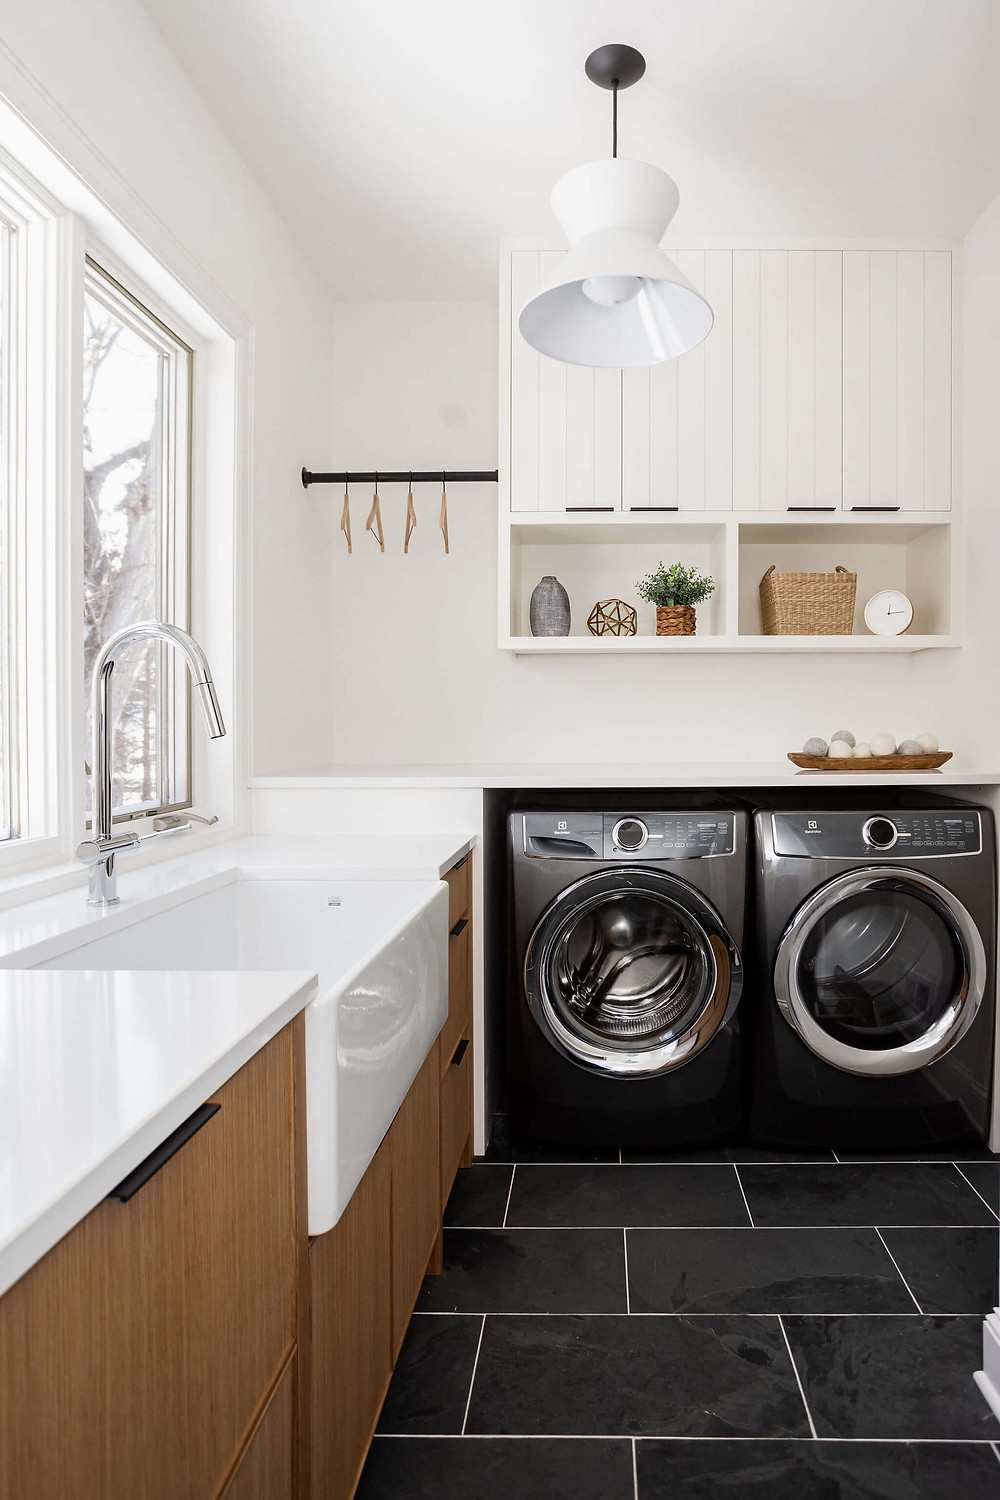 Scandinavian designed laundry room mudroom with rift white oak cabinetry, large apron sink, slate tile floor and white quartz countertop